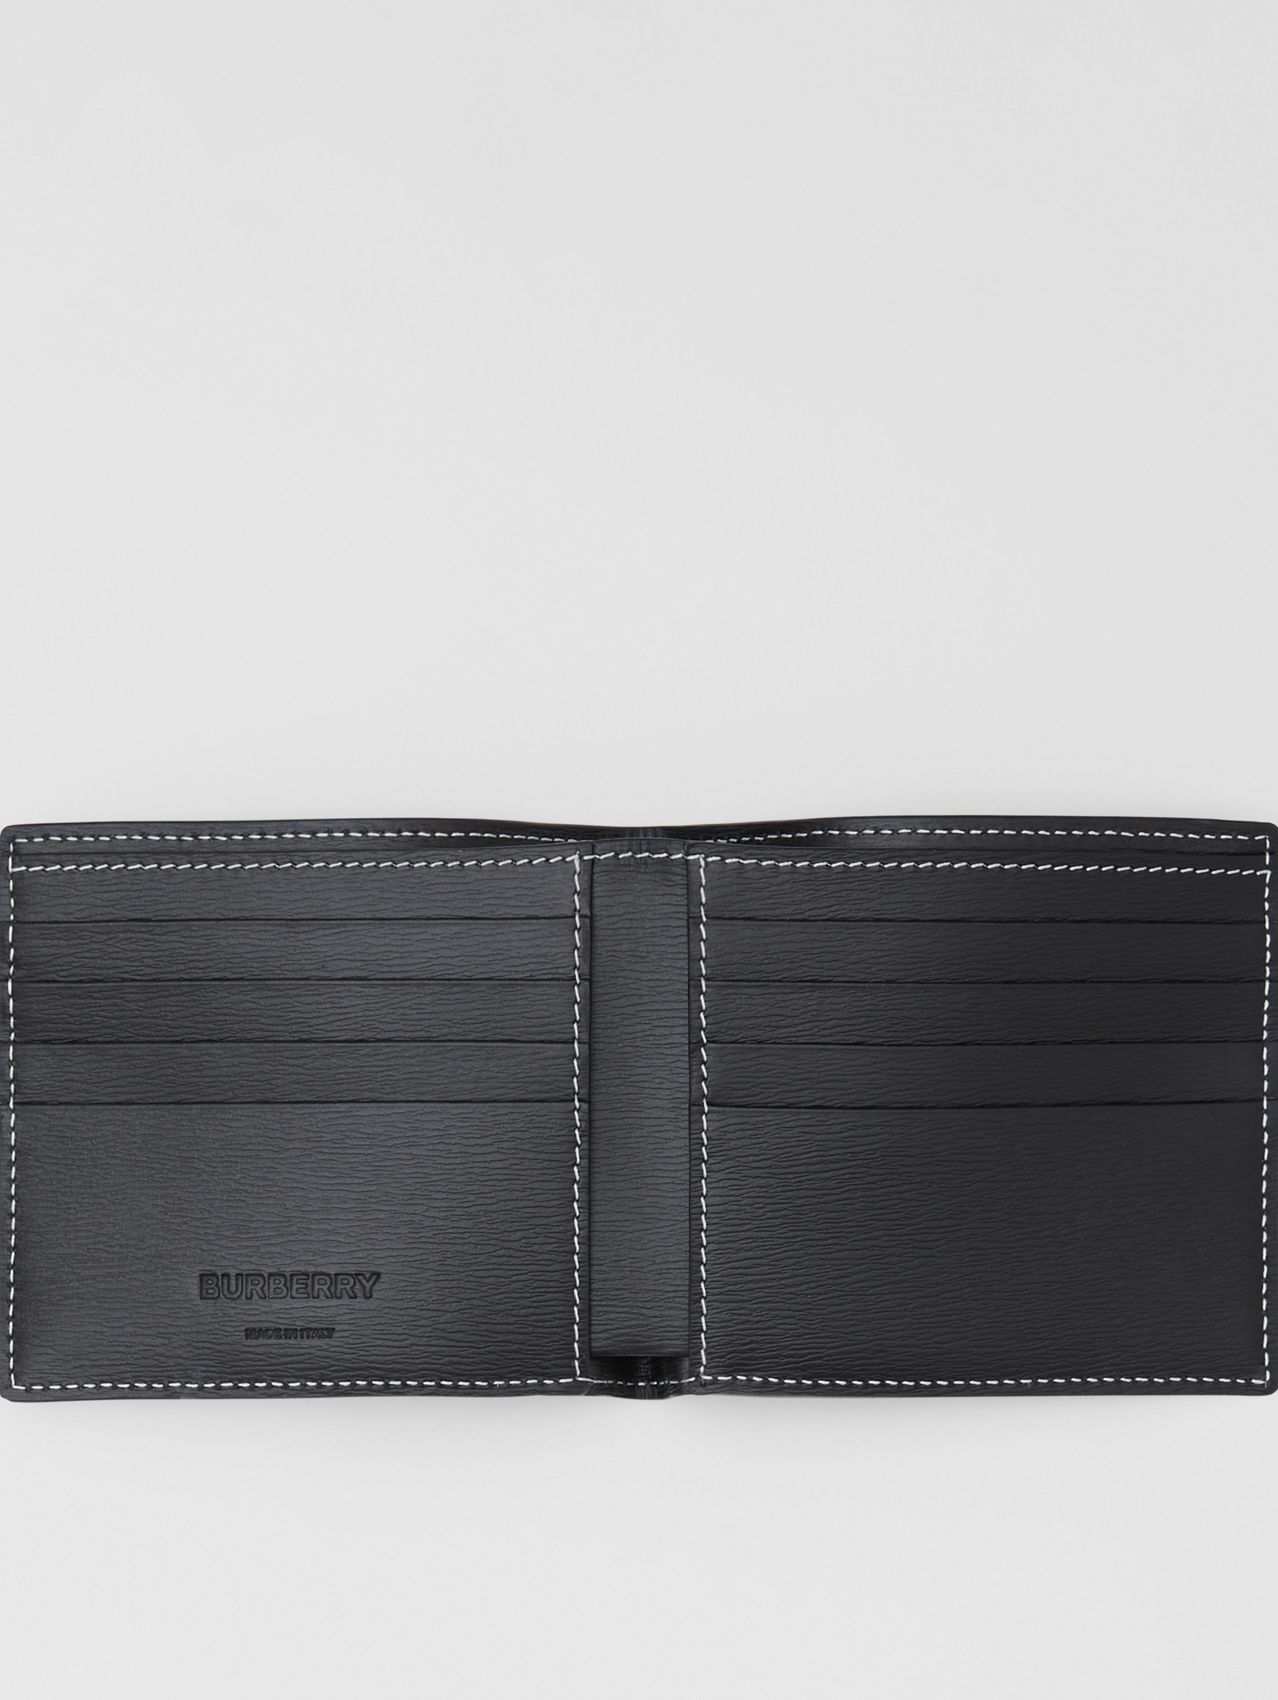 Topstitched Grainy Leather International Bifold Wallet (Black)